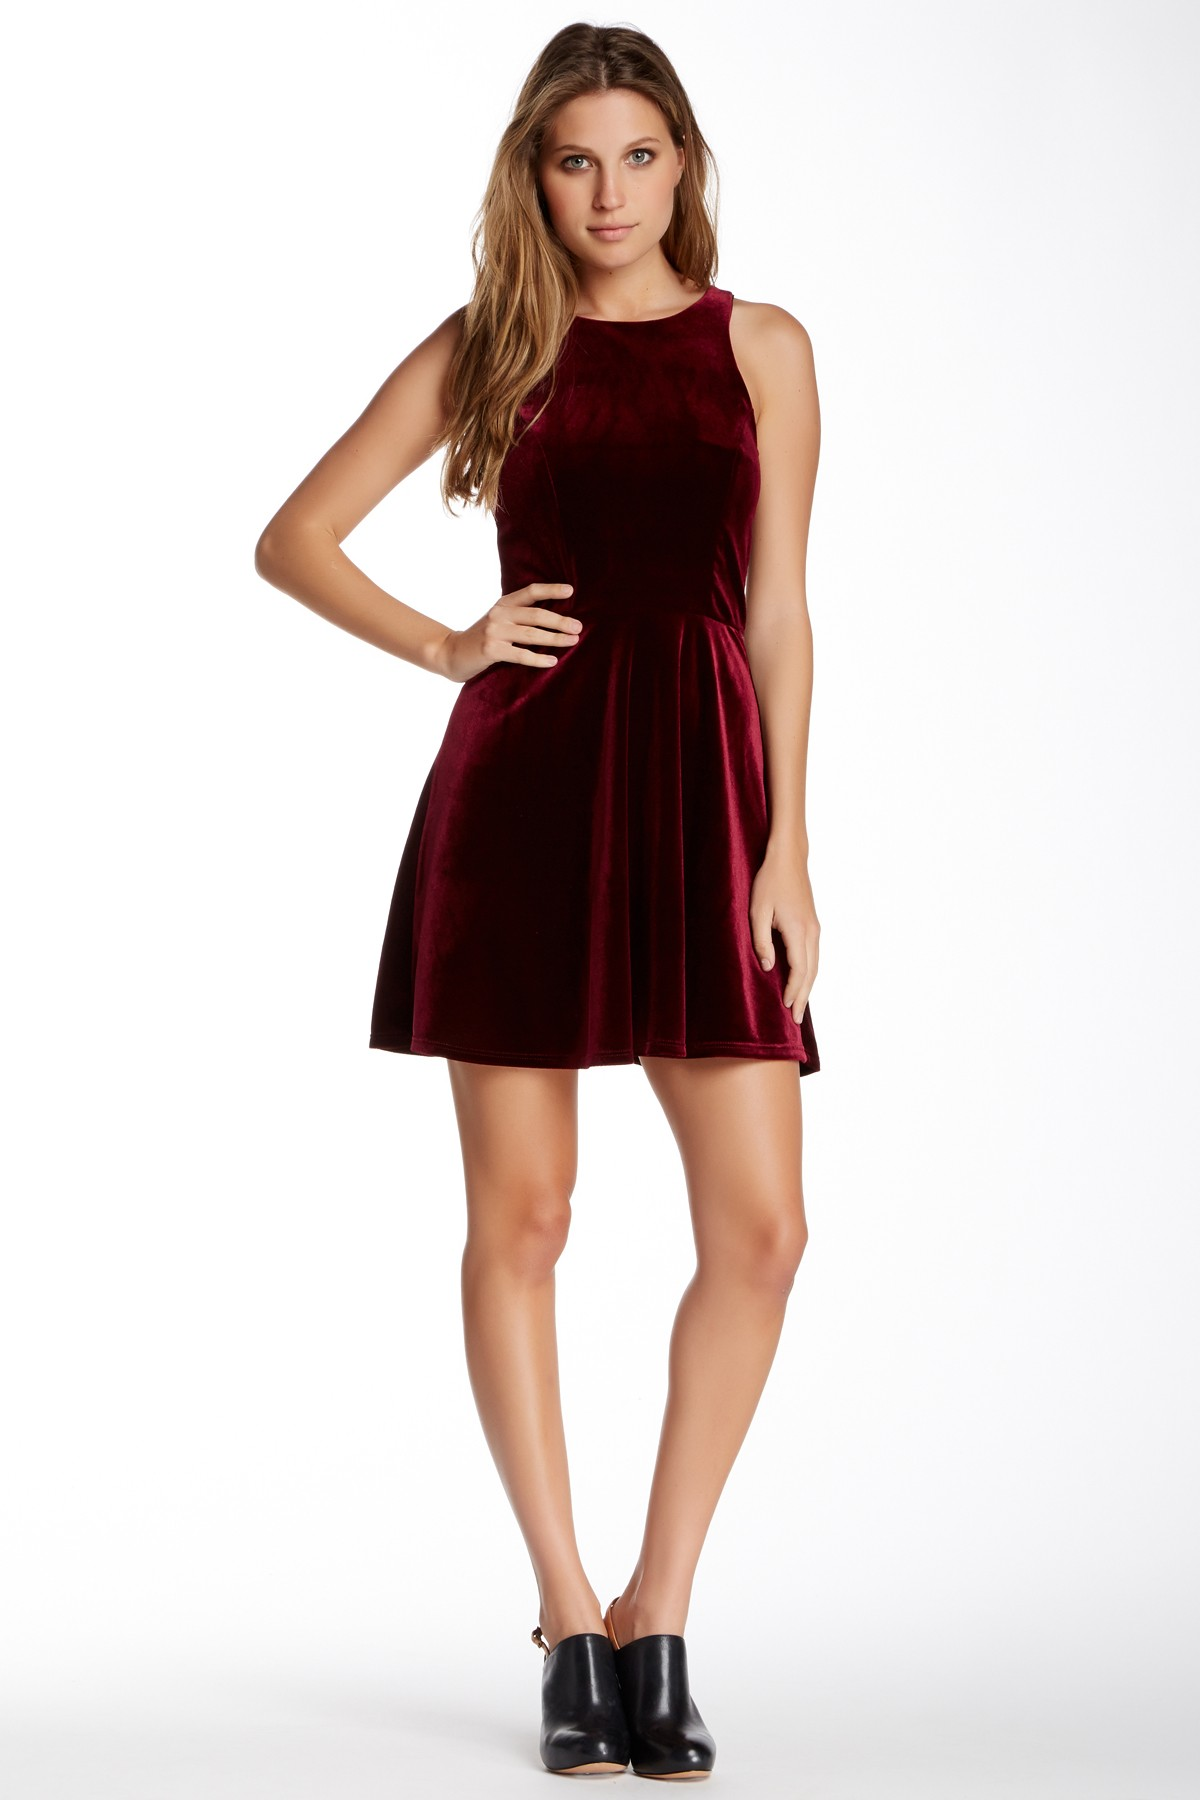 for Nordstrom rack dresses pour mariage